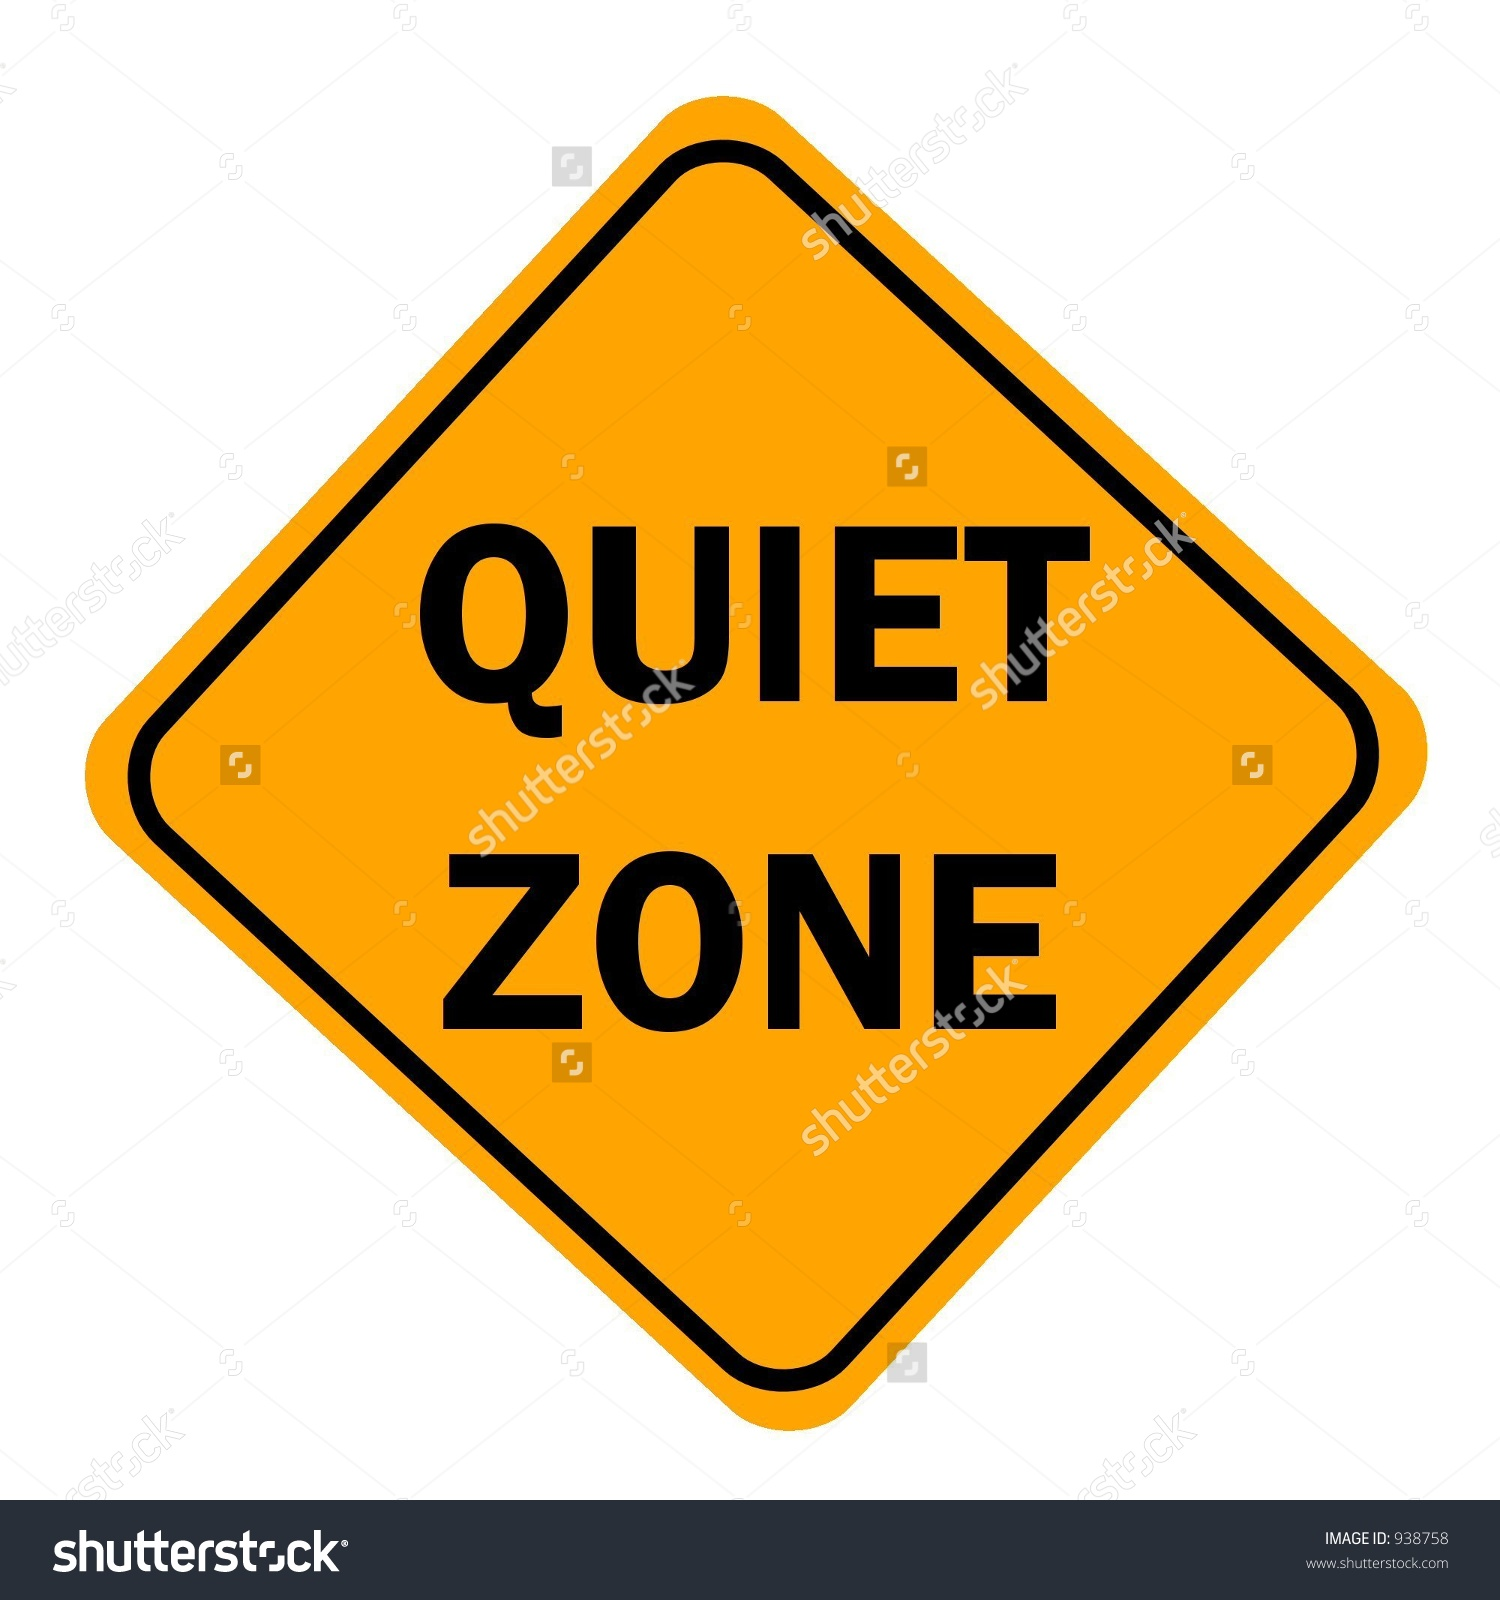 Quiet Zone Sign Isolated On White Stock Illustration 938758.